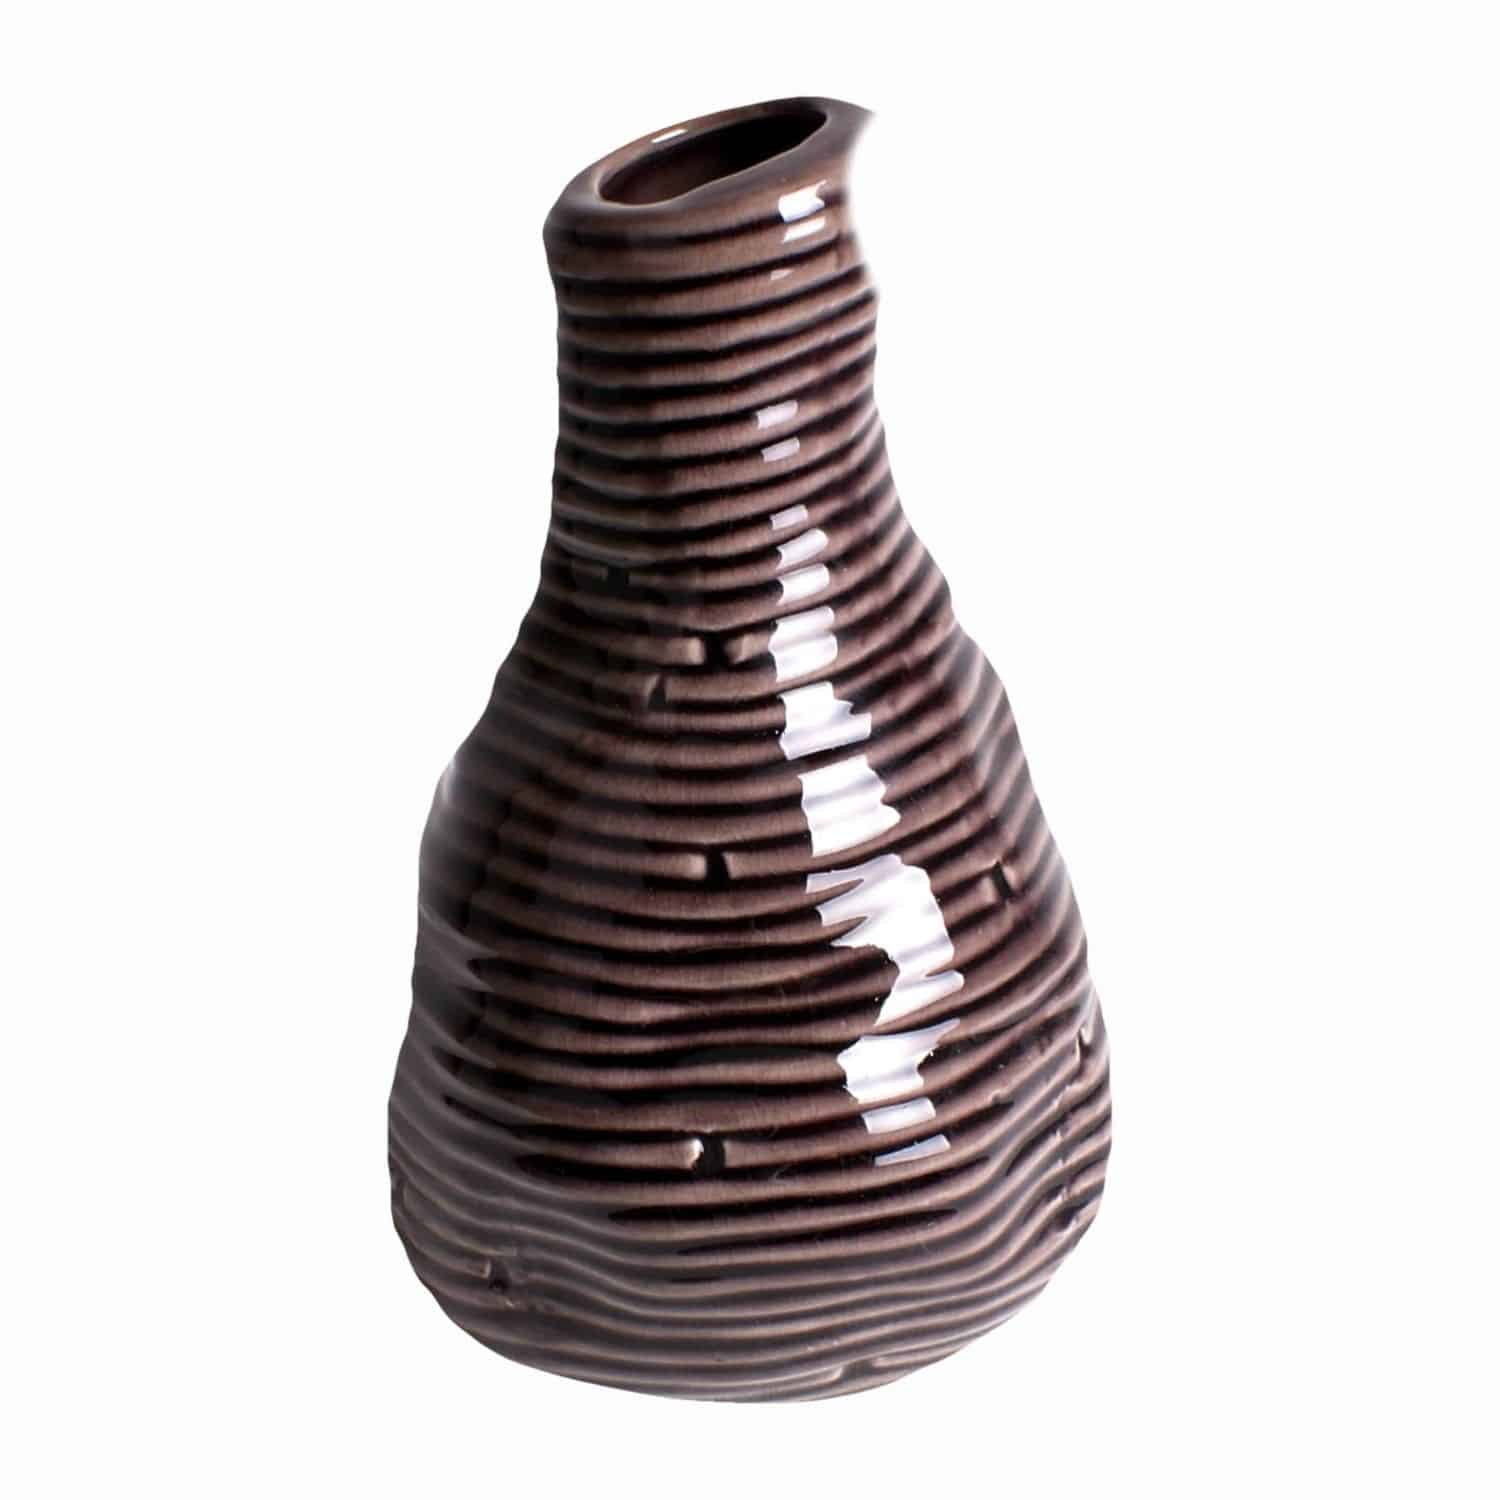 Shop for our handmade glazed vase. A distinctive aubergine colour and natural unevenness